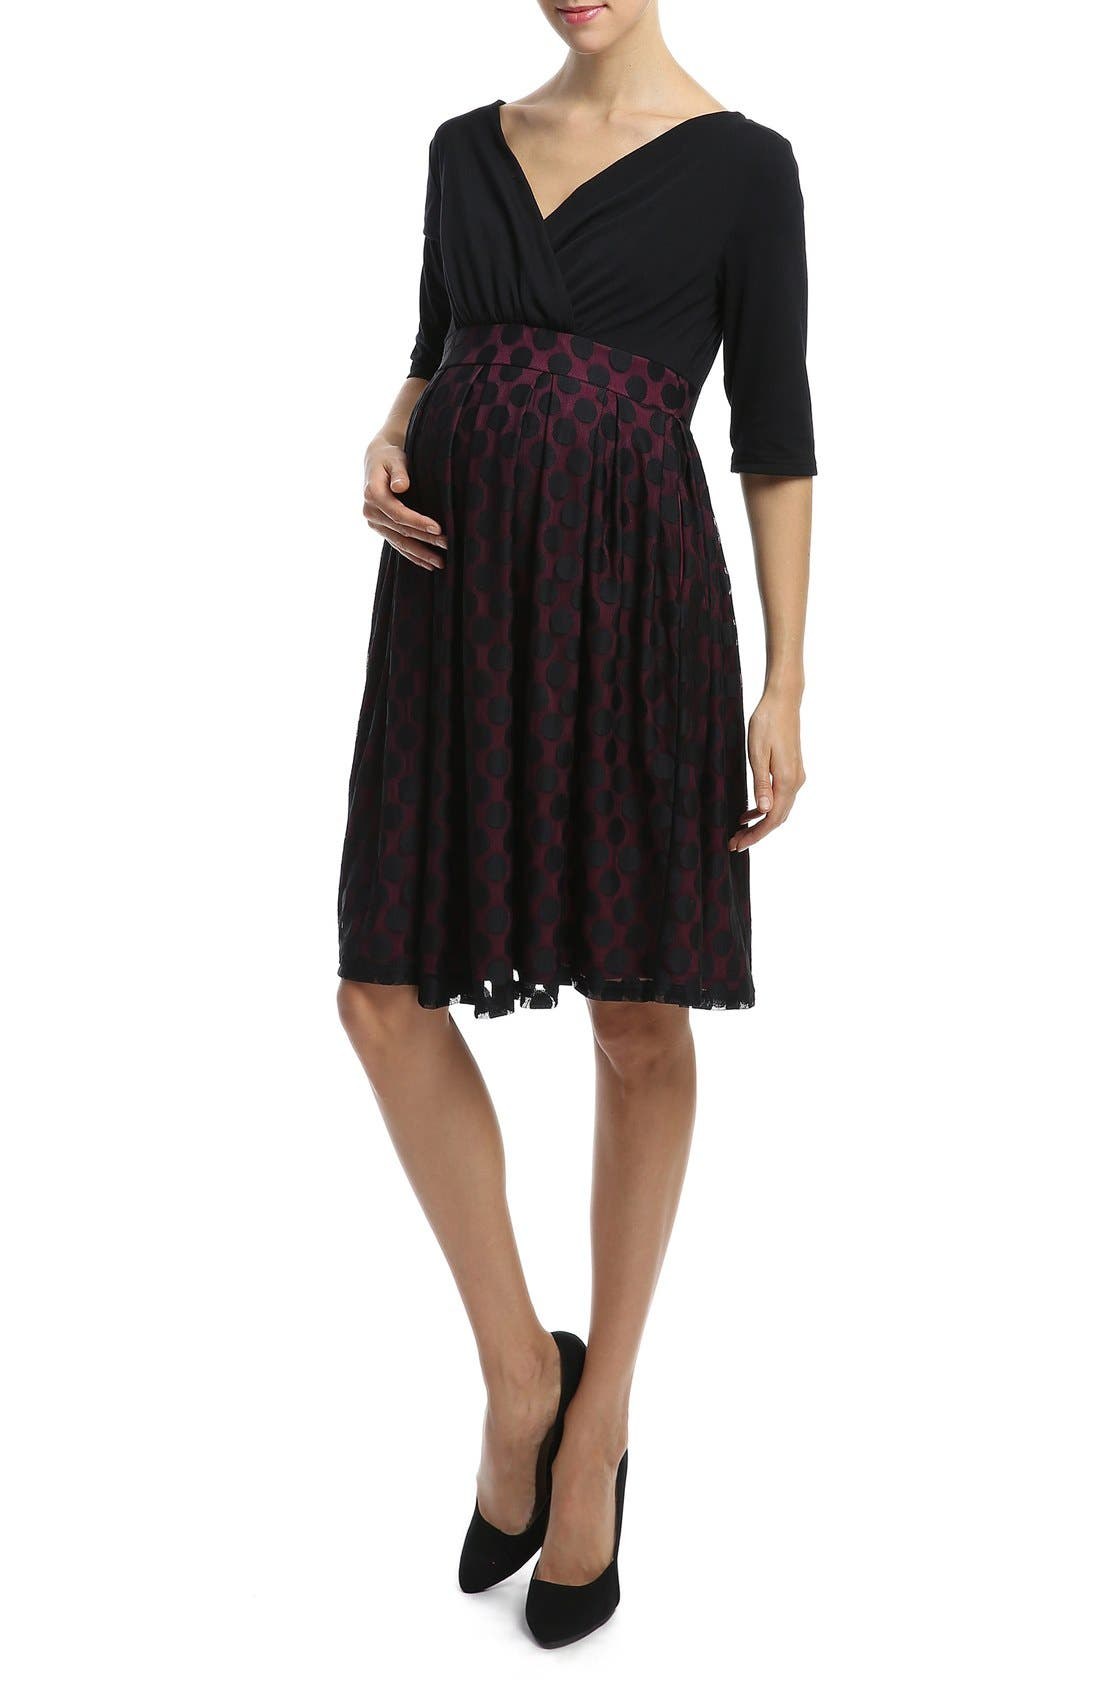 KIMI AND KAI,                             'Liliana' Polka Dot Lace Maternity Dress,                             Alternate thumbnail 4, color,                             003